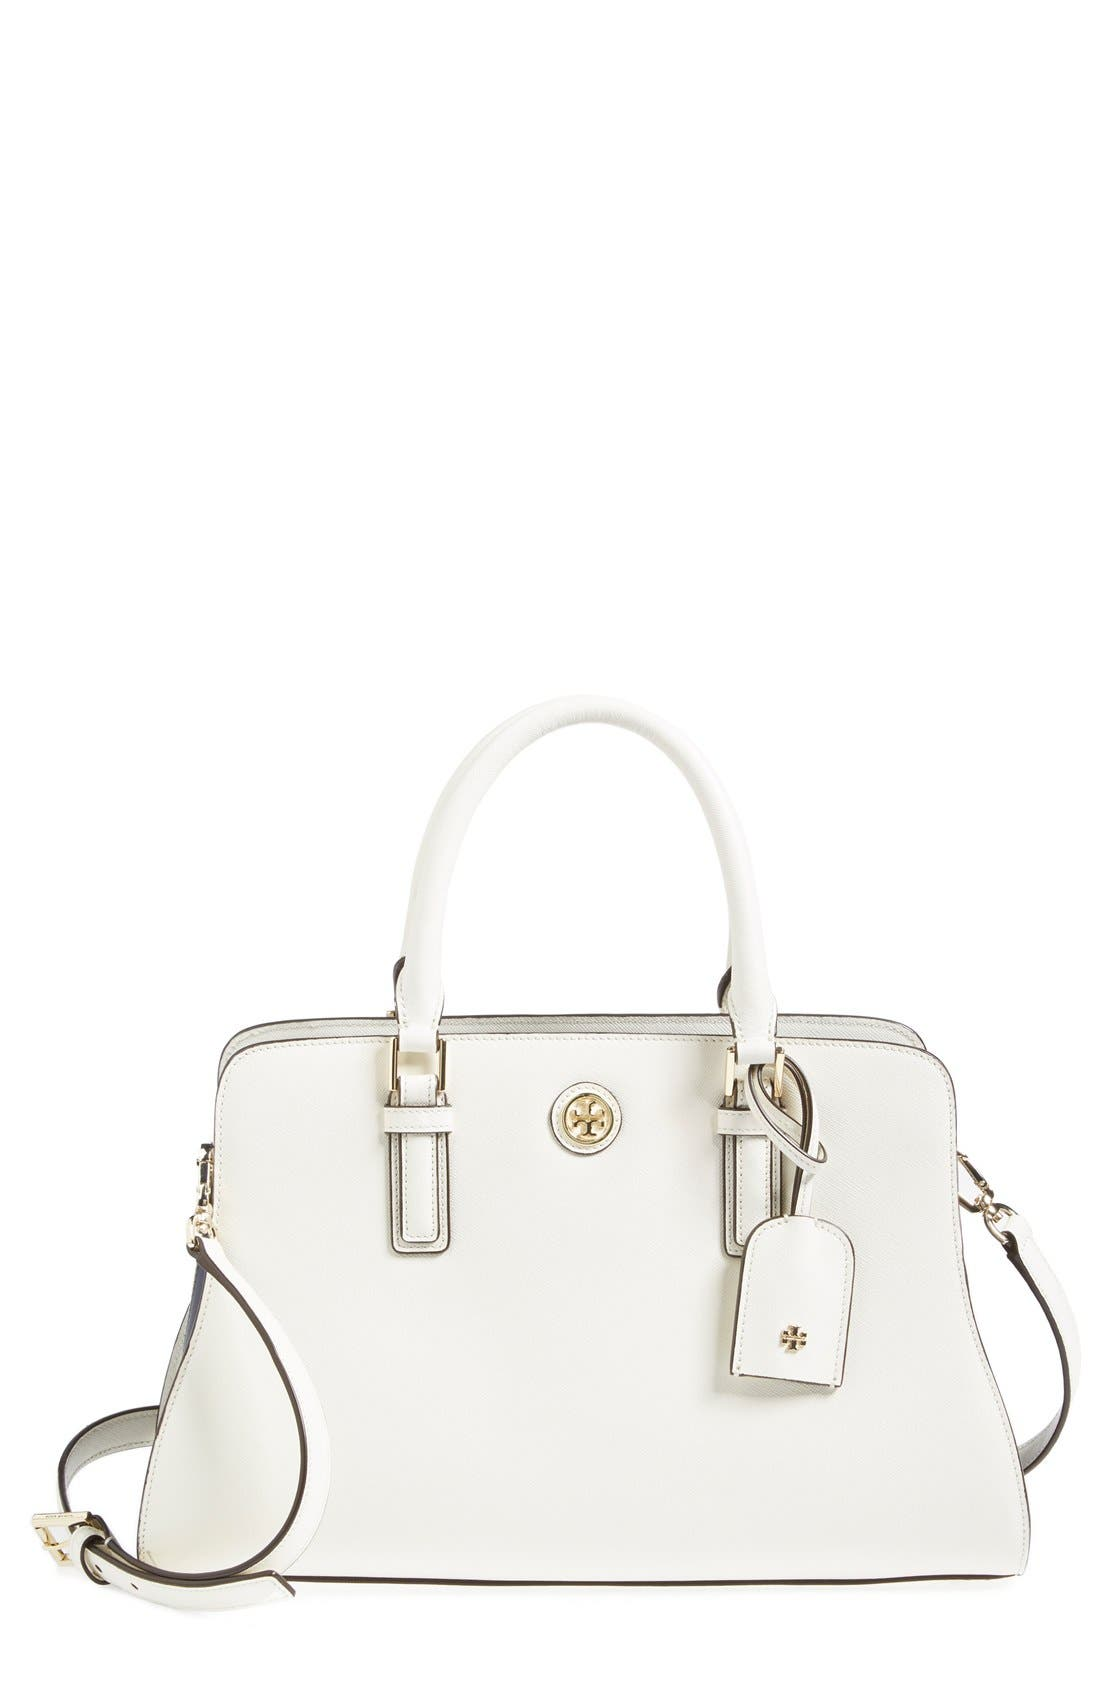 Alternate Image 1 Selected - Tory Burch 'Robinson - Curved' Leather Satchel